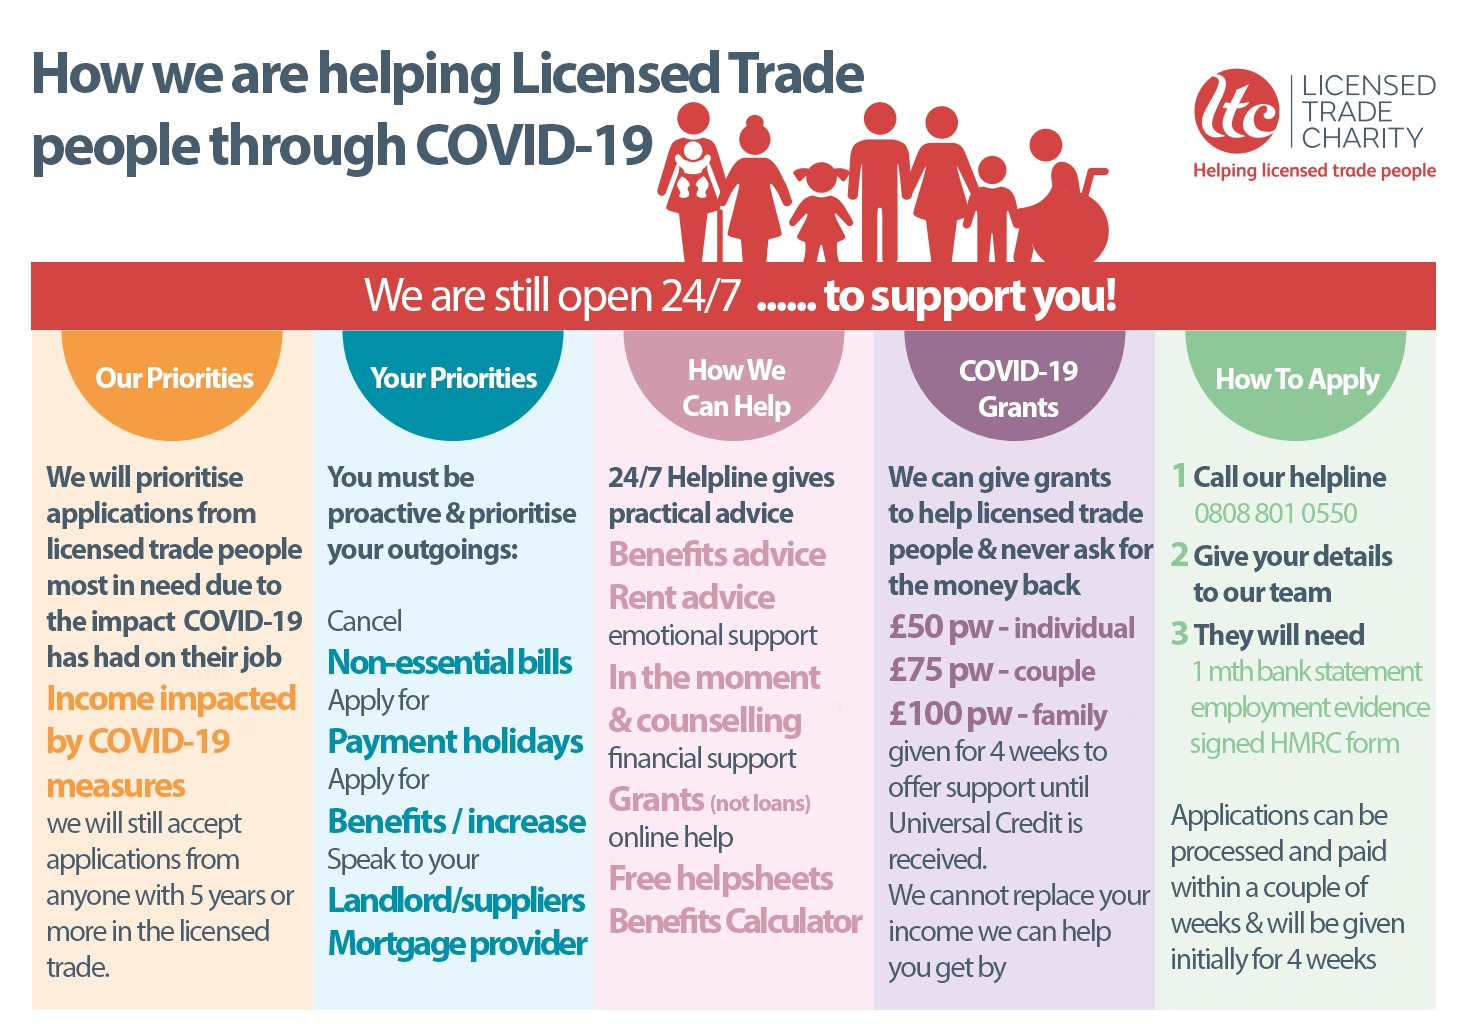 infographic showing how the licensed trade charity are supporting the licensed trade during covid-19